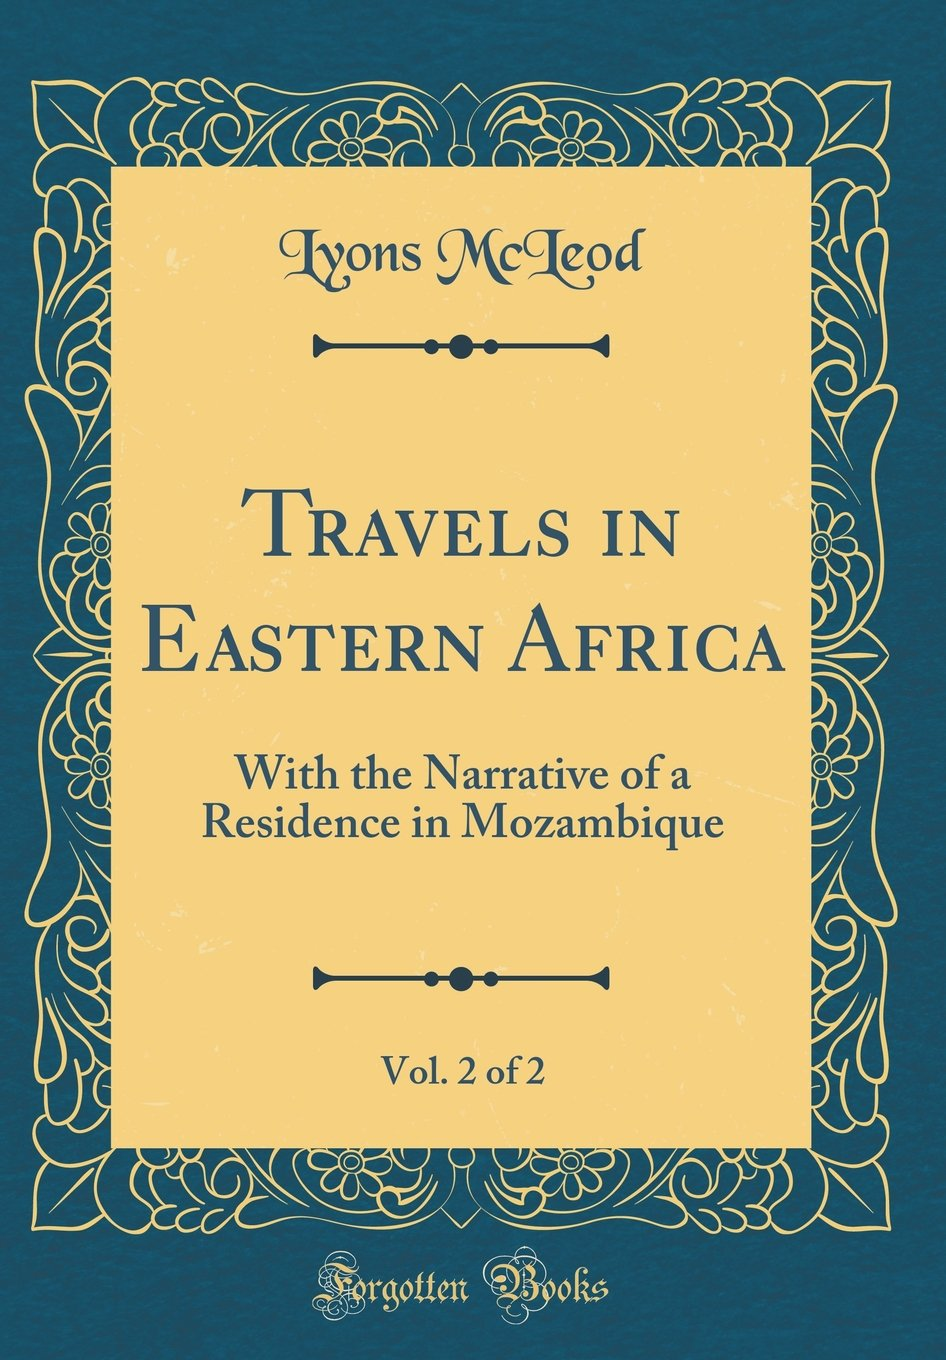 Travels in Eastern Africa, Vol. 2 of 2: With the Narrative of a Residence in Mozambique (Classic Reprint)